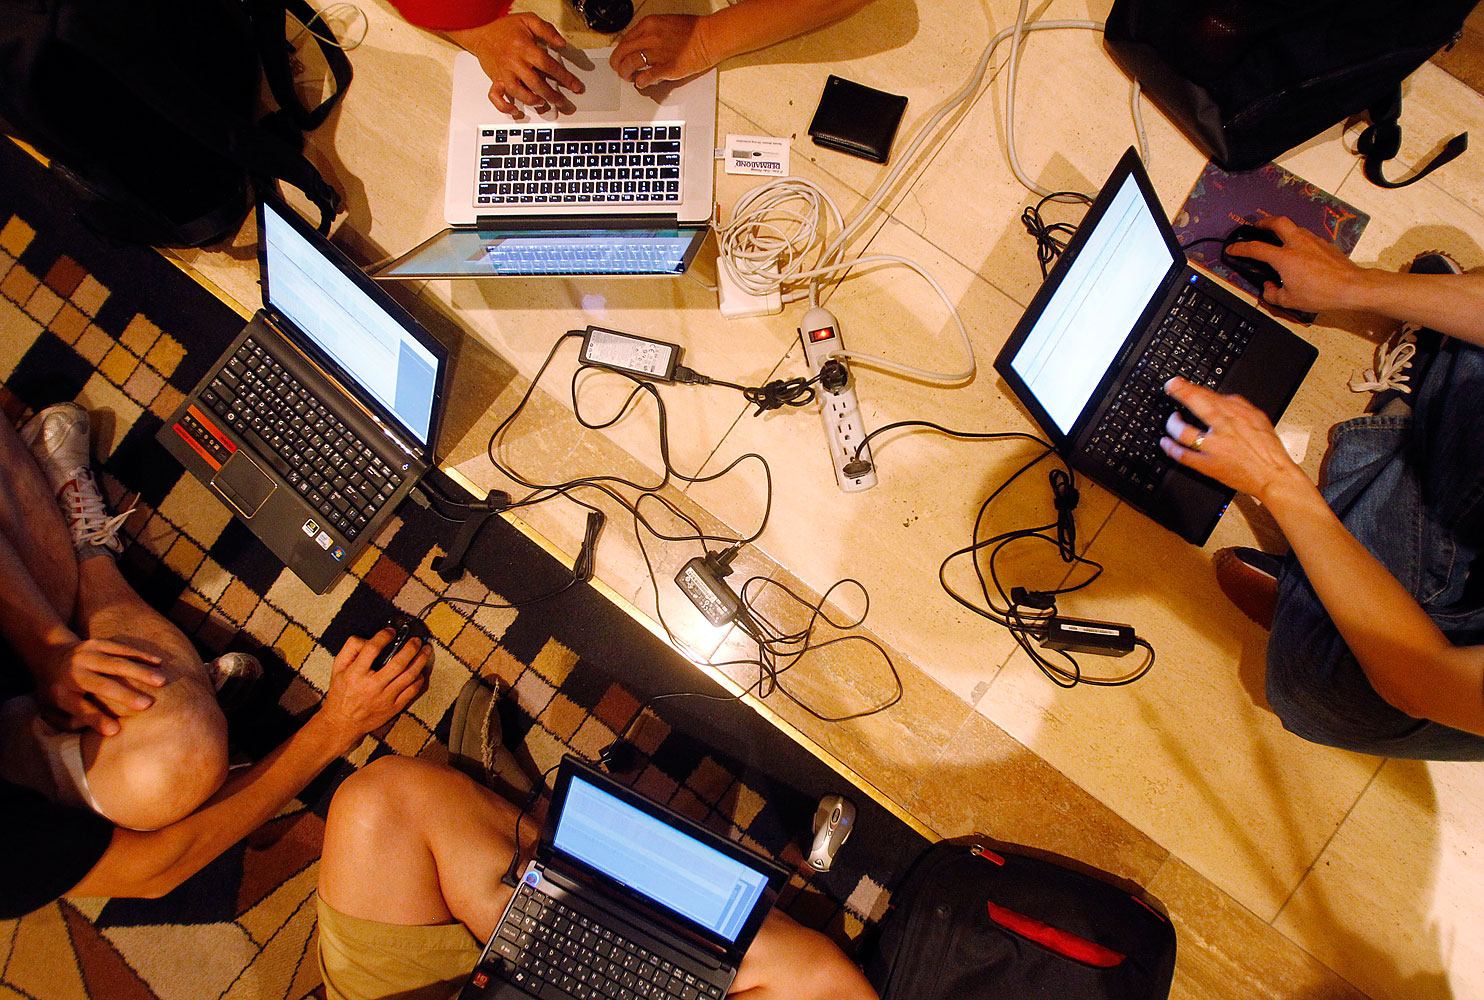 Hackers participating at the 2011 Defcon conference in Las Vegas, Aug. 5, 2011.